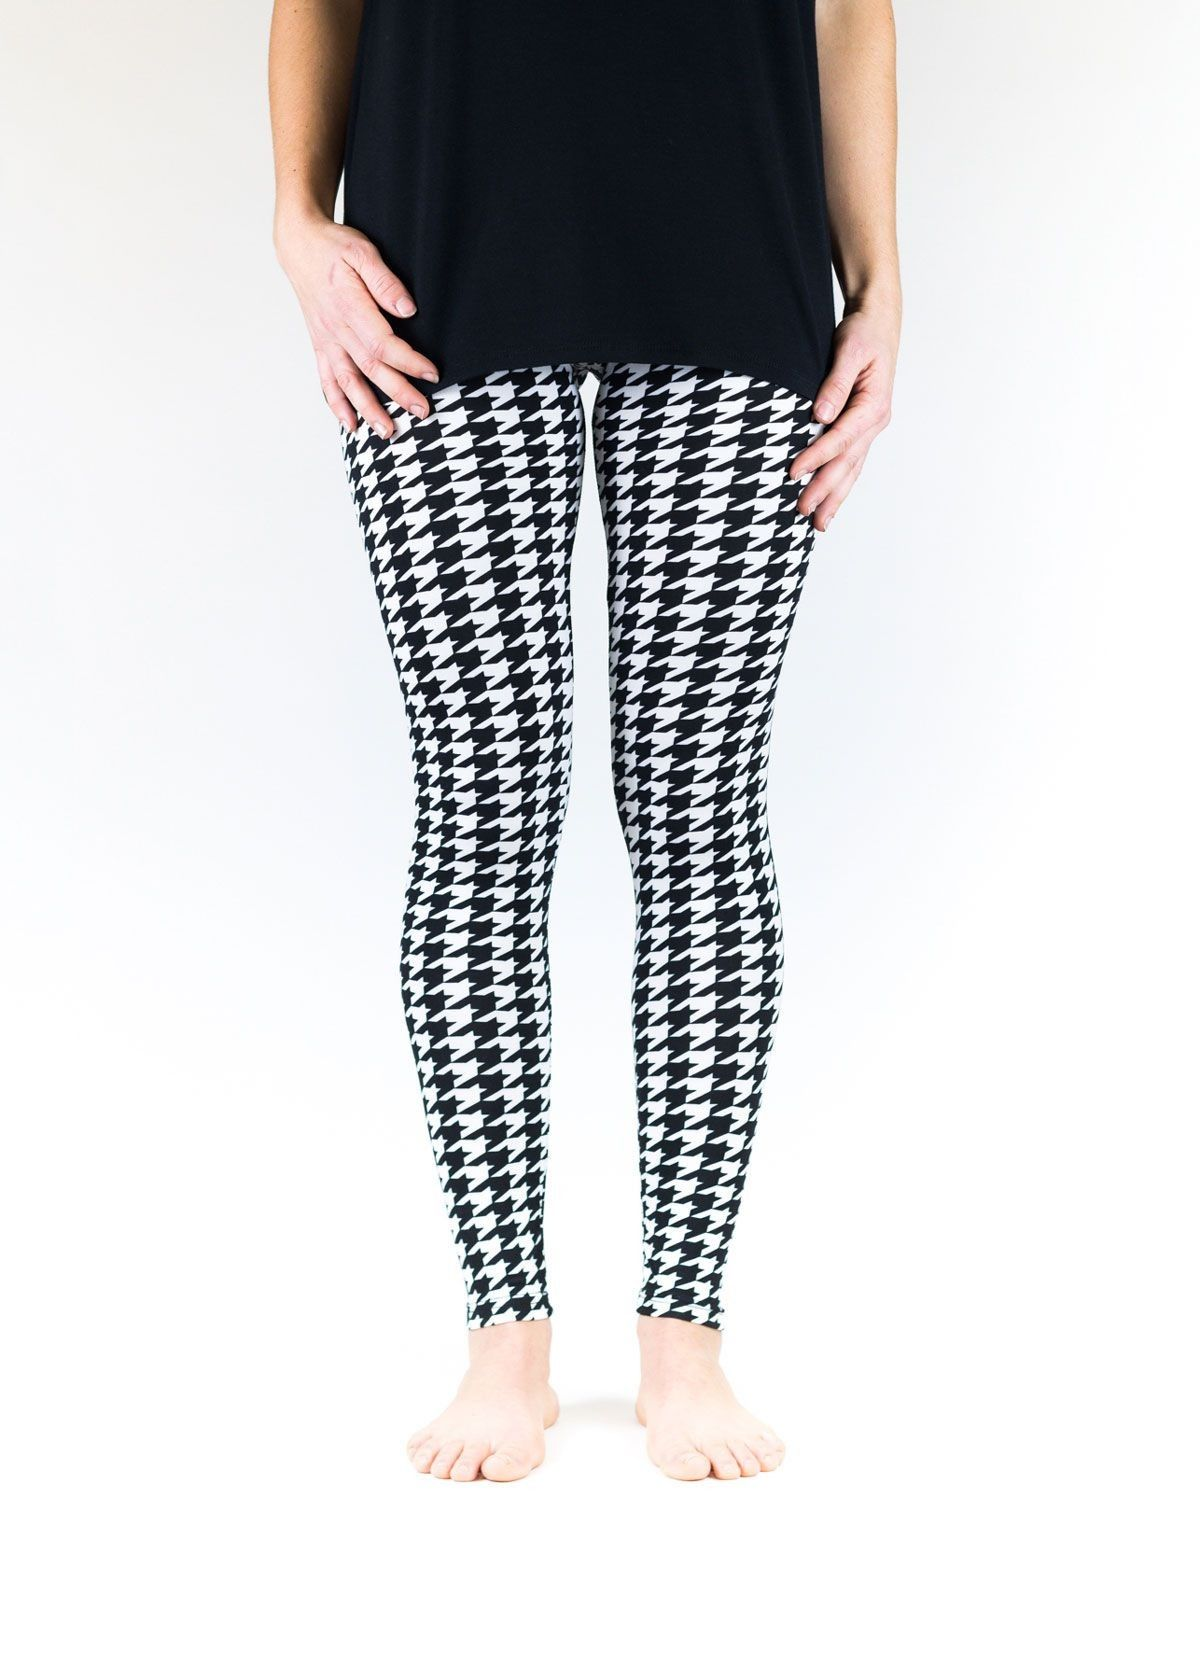 Black and White Houndstooth Leggings. Enter discount coupon code ...